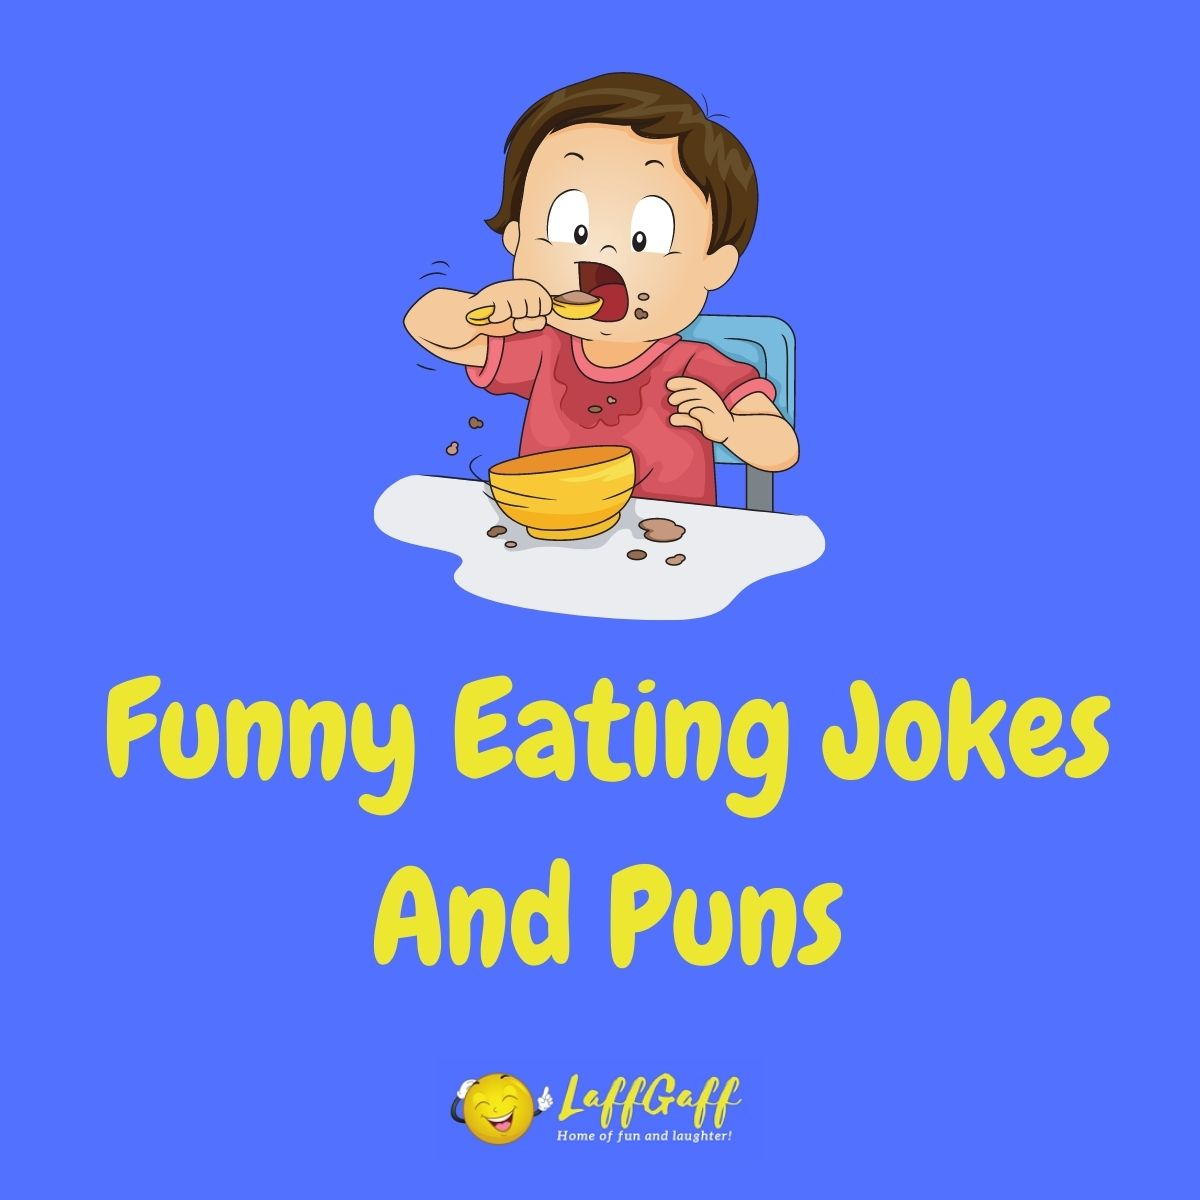 Featured image for a page of funny eating jokes and puns.